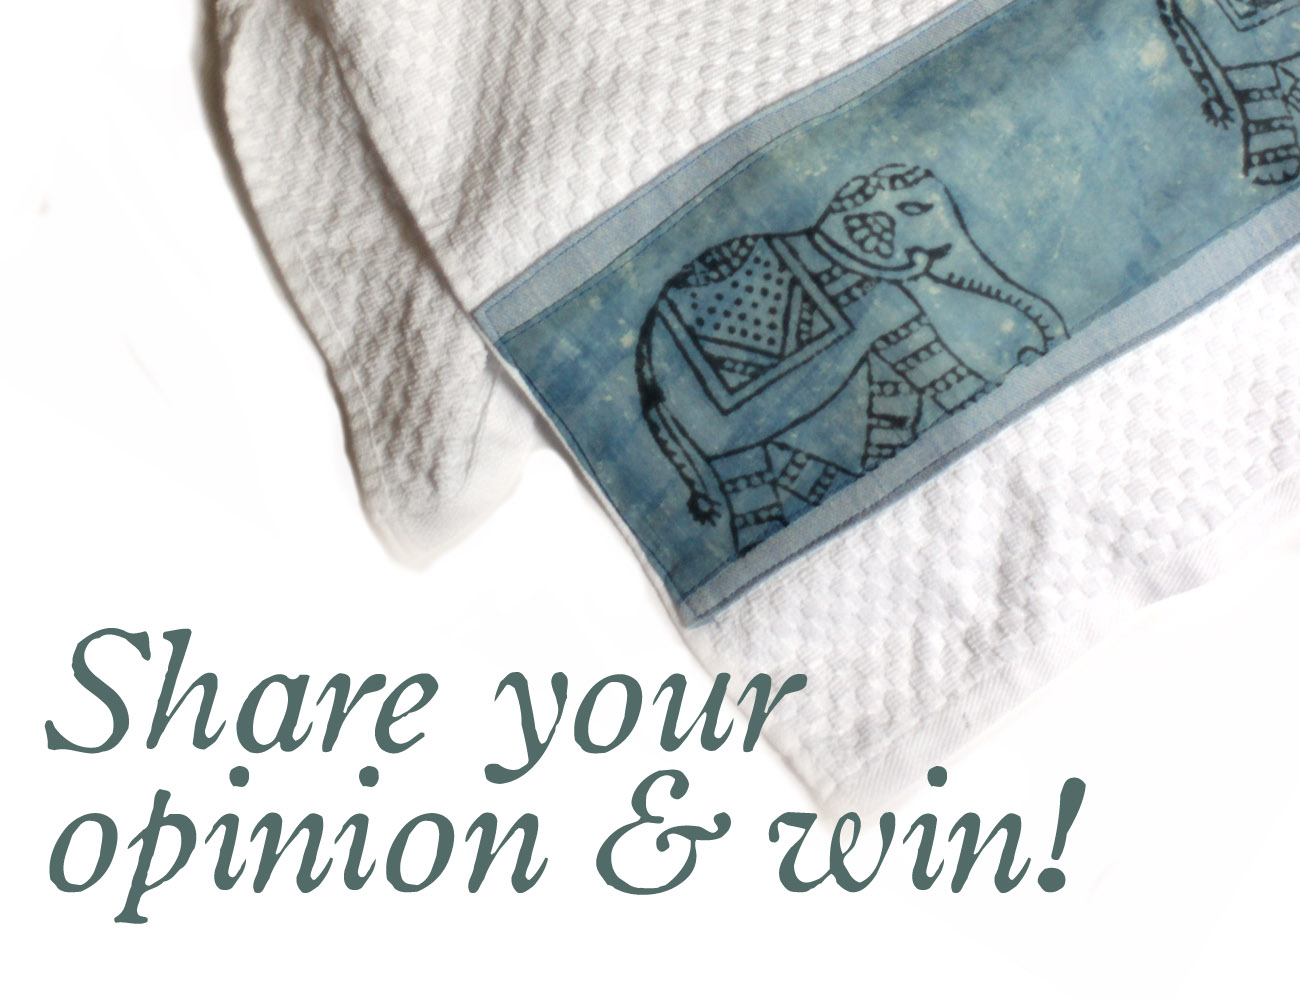 Kitchen Towel Feedback & Giveaway